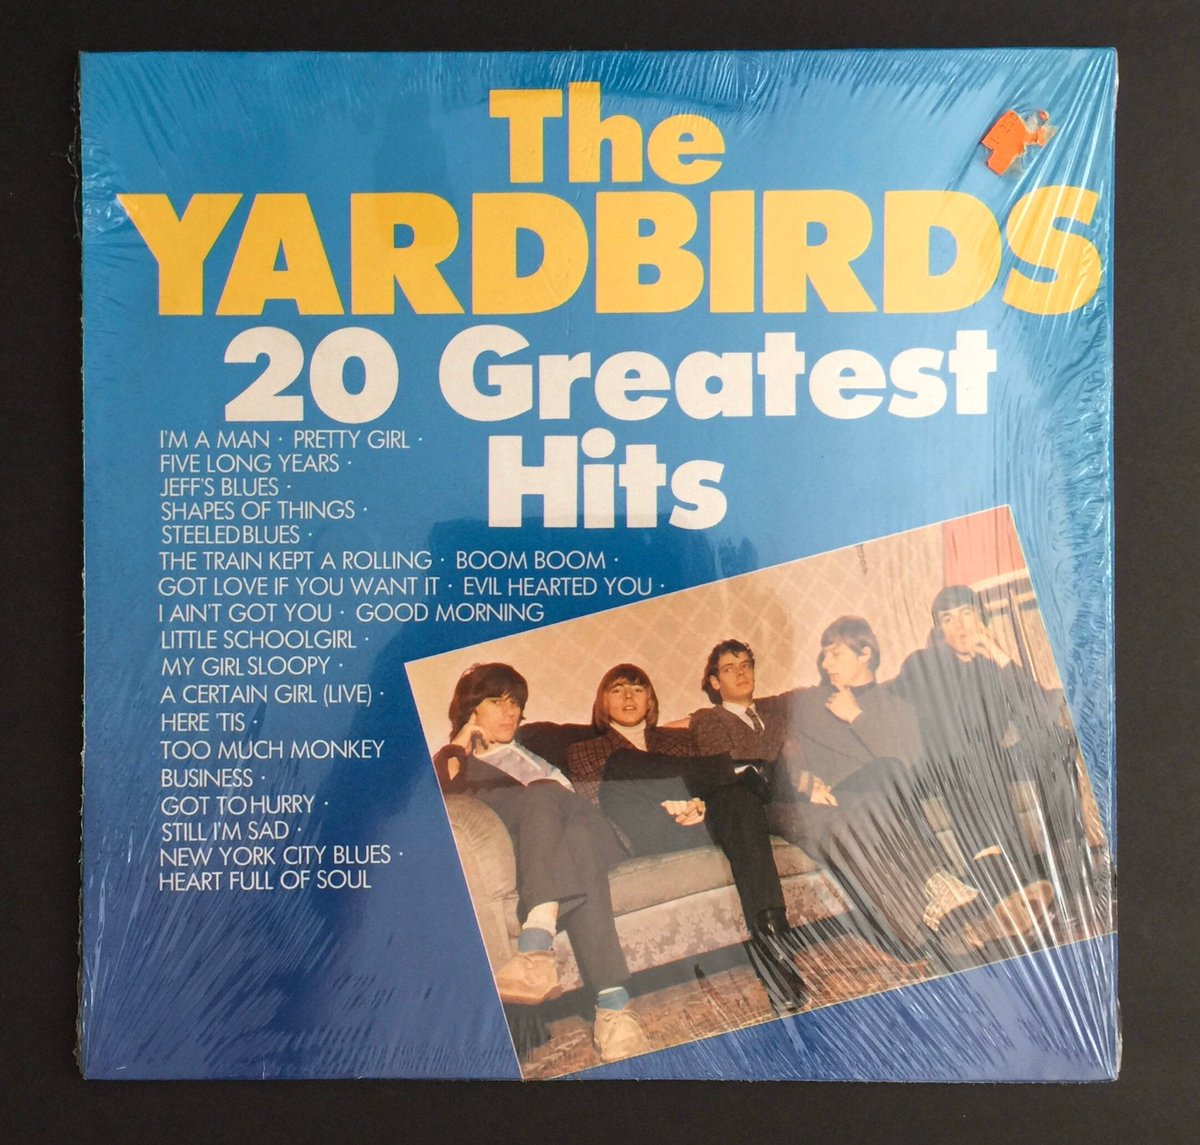 Excited to share this item from my #etsy shop: The YardBirds 20 Greatest Hits/Released by Babylon/ West Germany/Late 1970's /https://etsy.me/2rCQJG9 Just Listed! One of the greatest bands of ALL time w/ #EricClapton #JimmyPage #JeffBeck !20% off of everything in my shop! Come by!pic.twitter.com/rtN73jm3UG